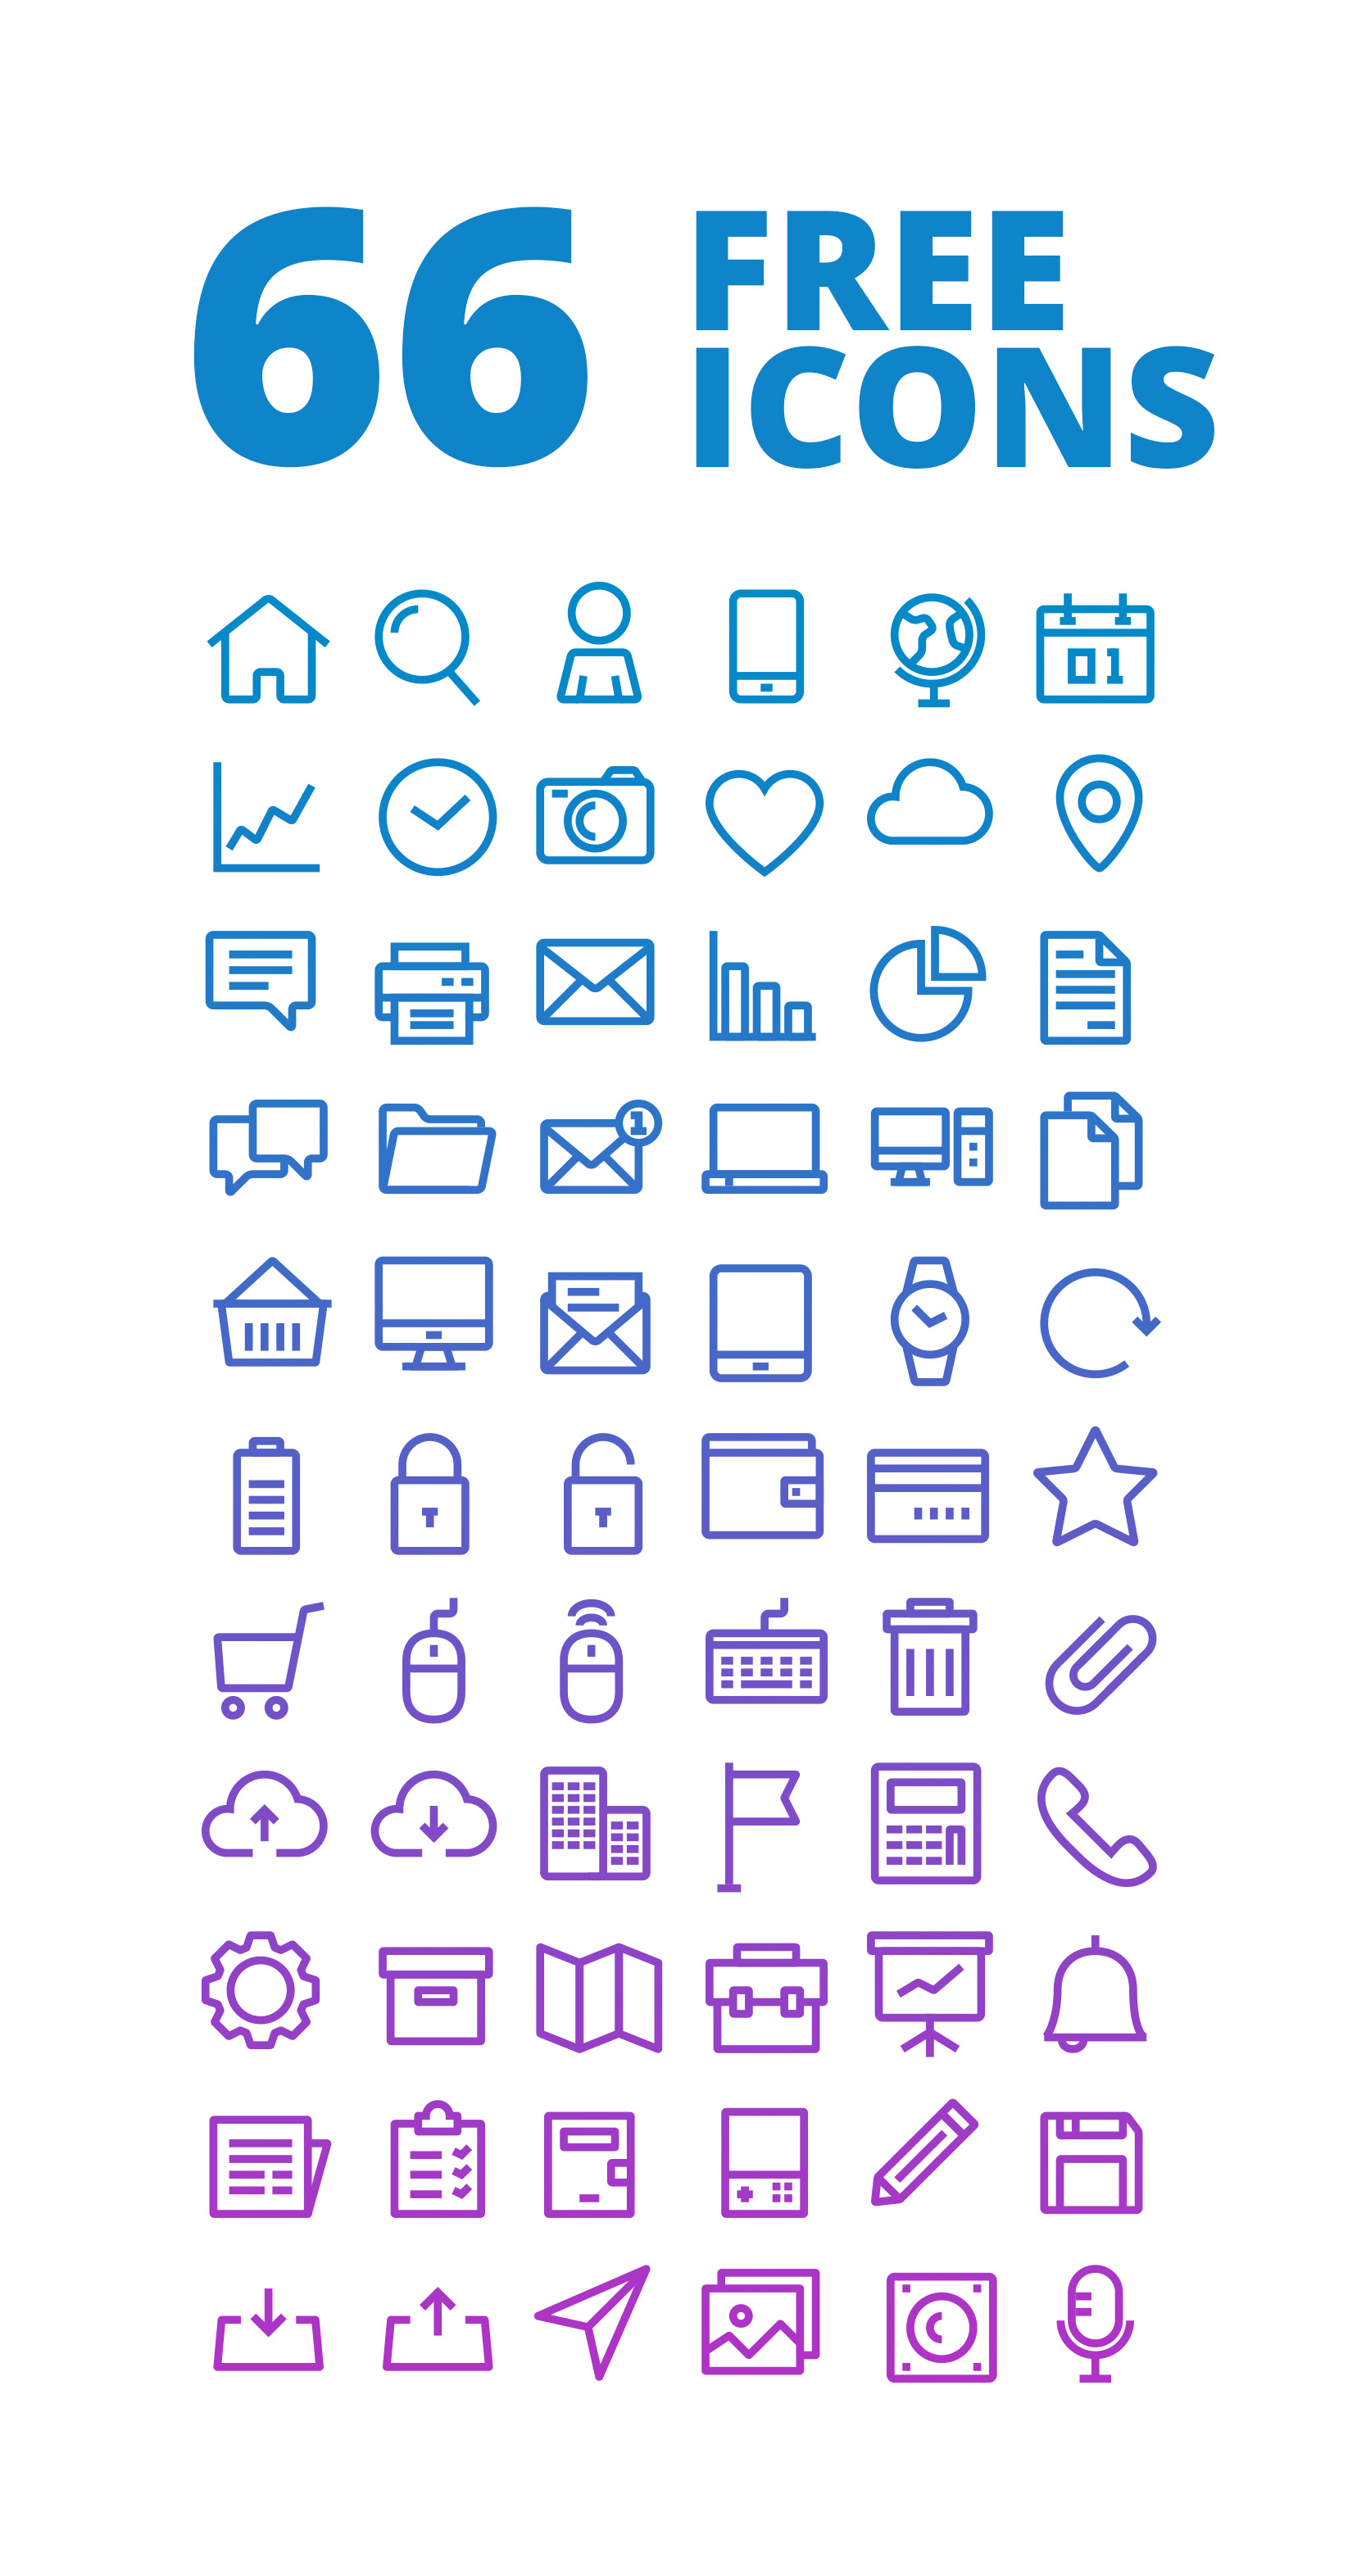 Free-Outlined-Icons-Set